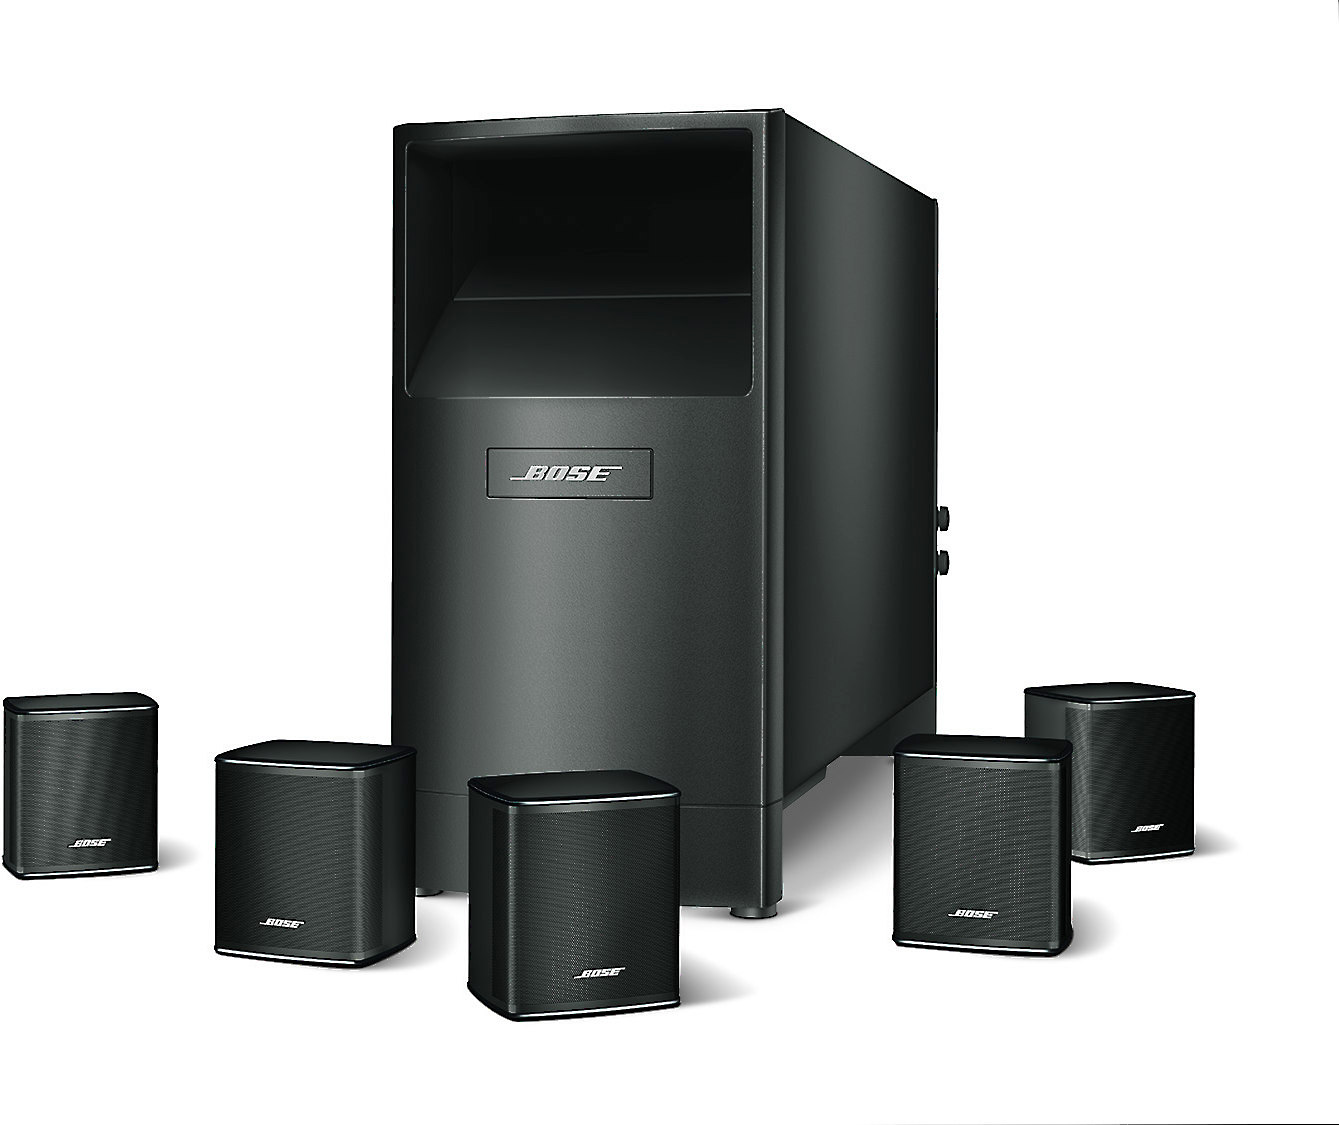 Bose Home Cinema Bose® Acoustimass® 6 Series V Home Theater Speaker System At Crutchfield